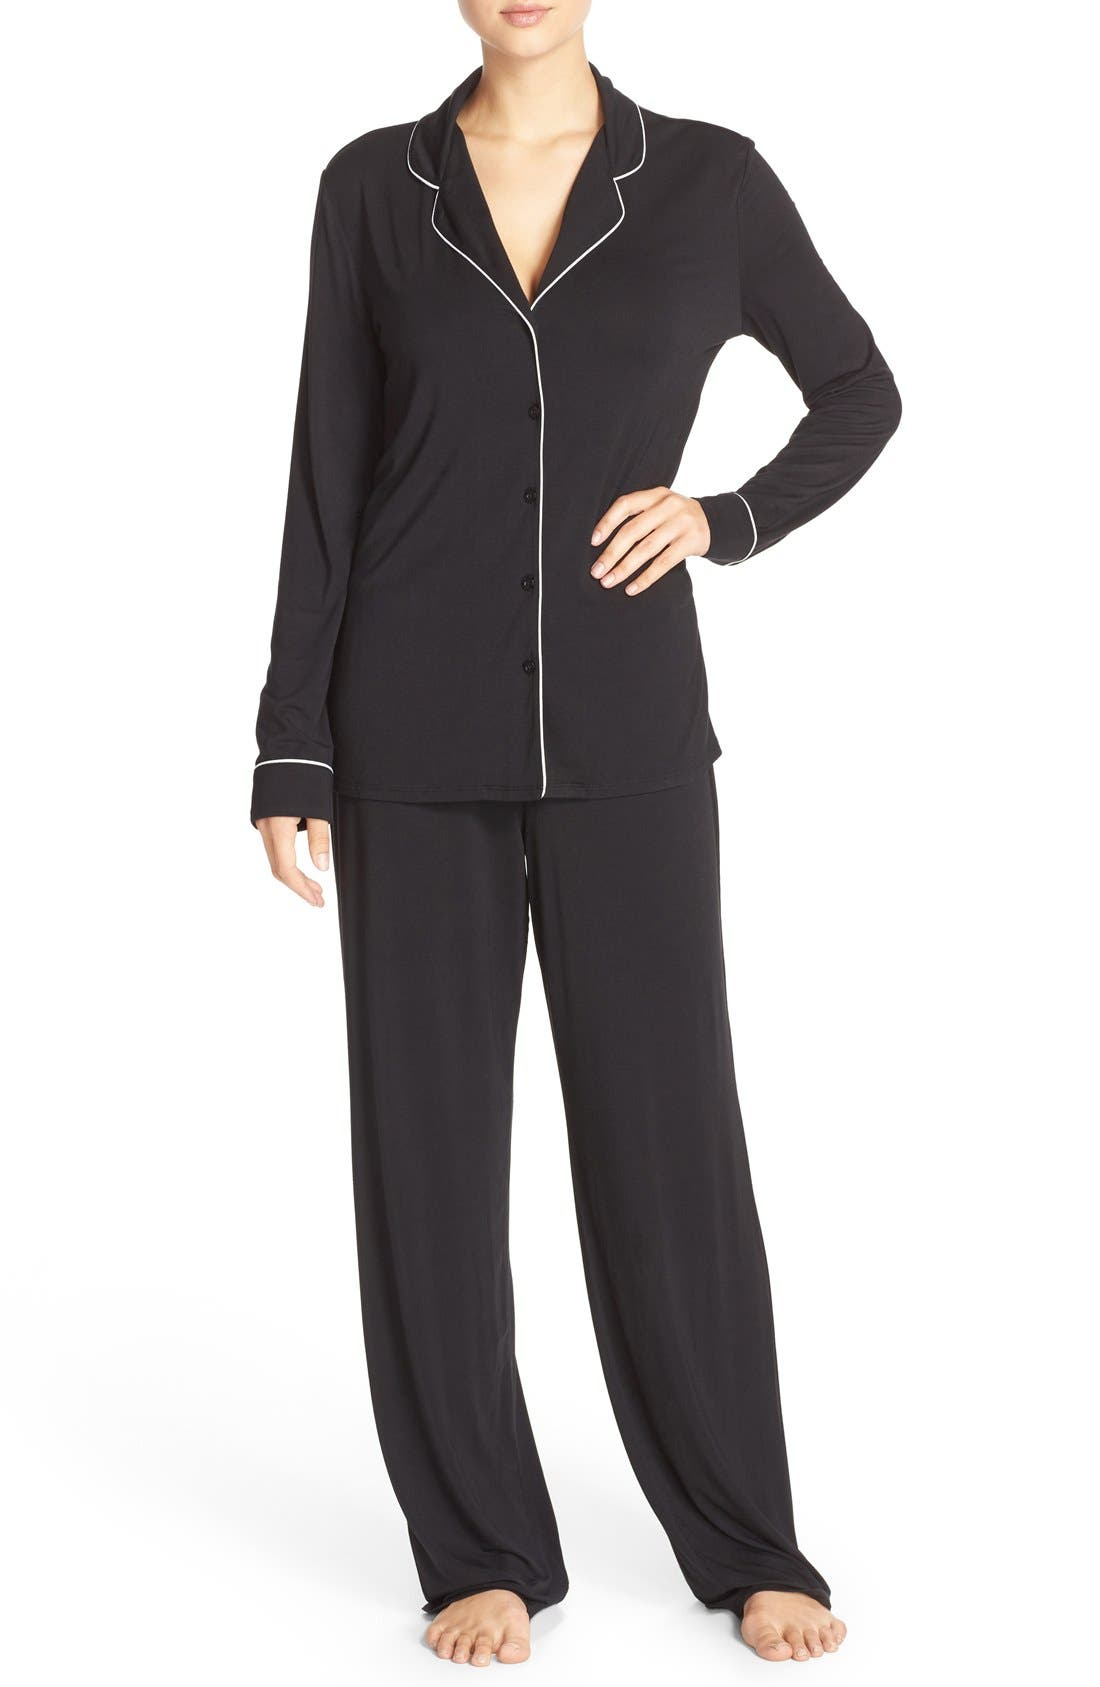 Main Image - Nordstrom Lingerie Moonlight Pajamas